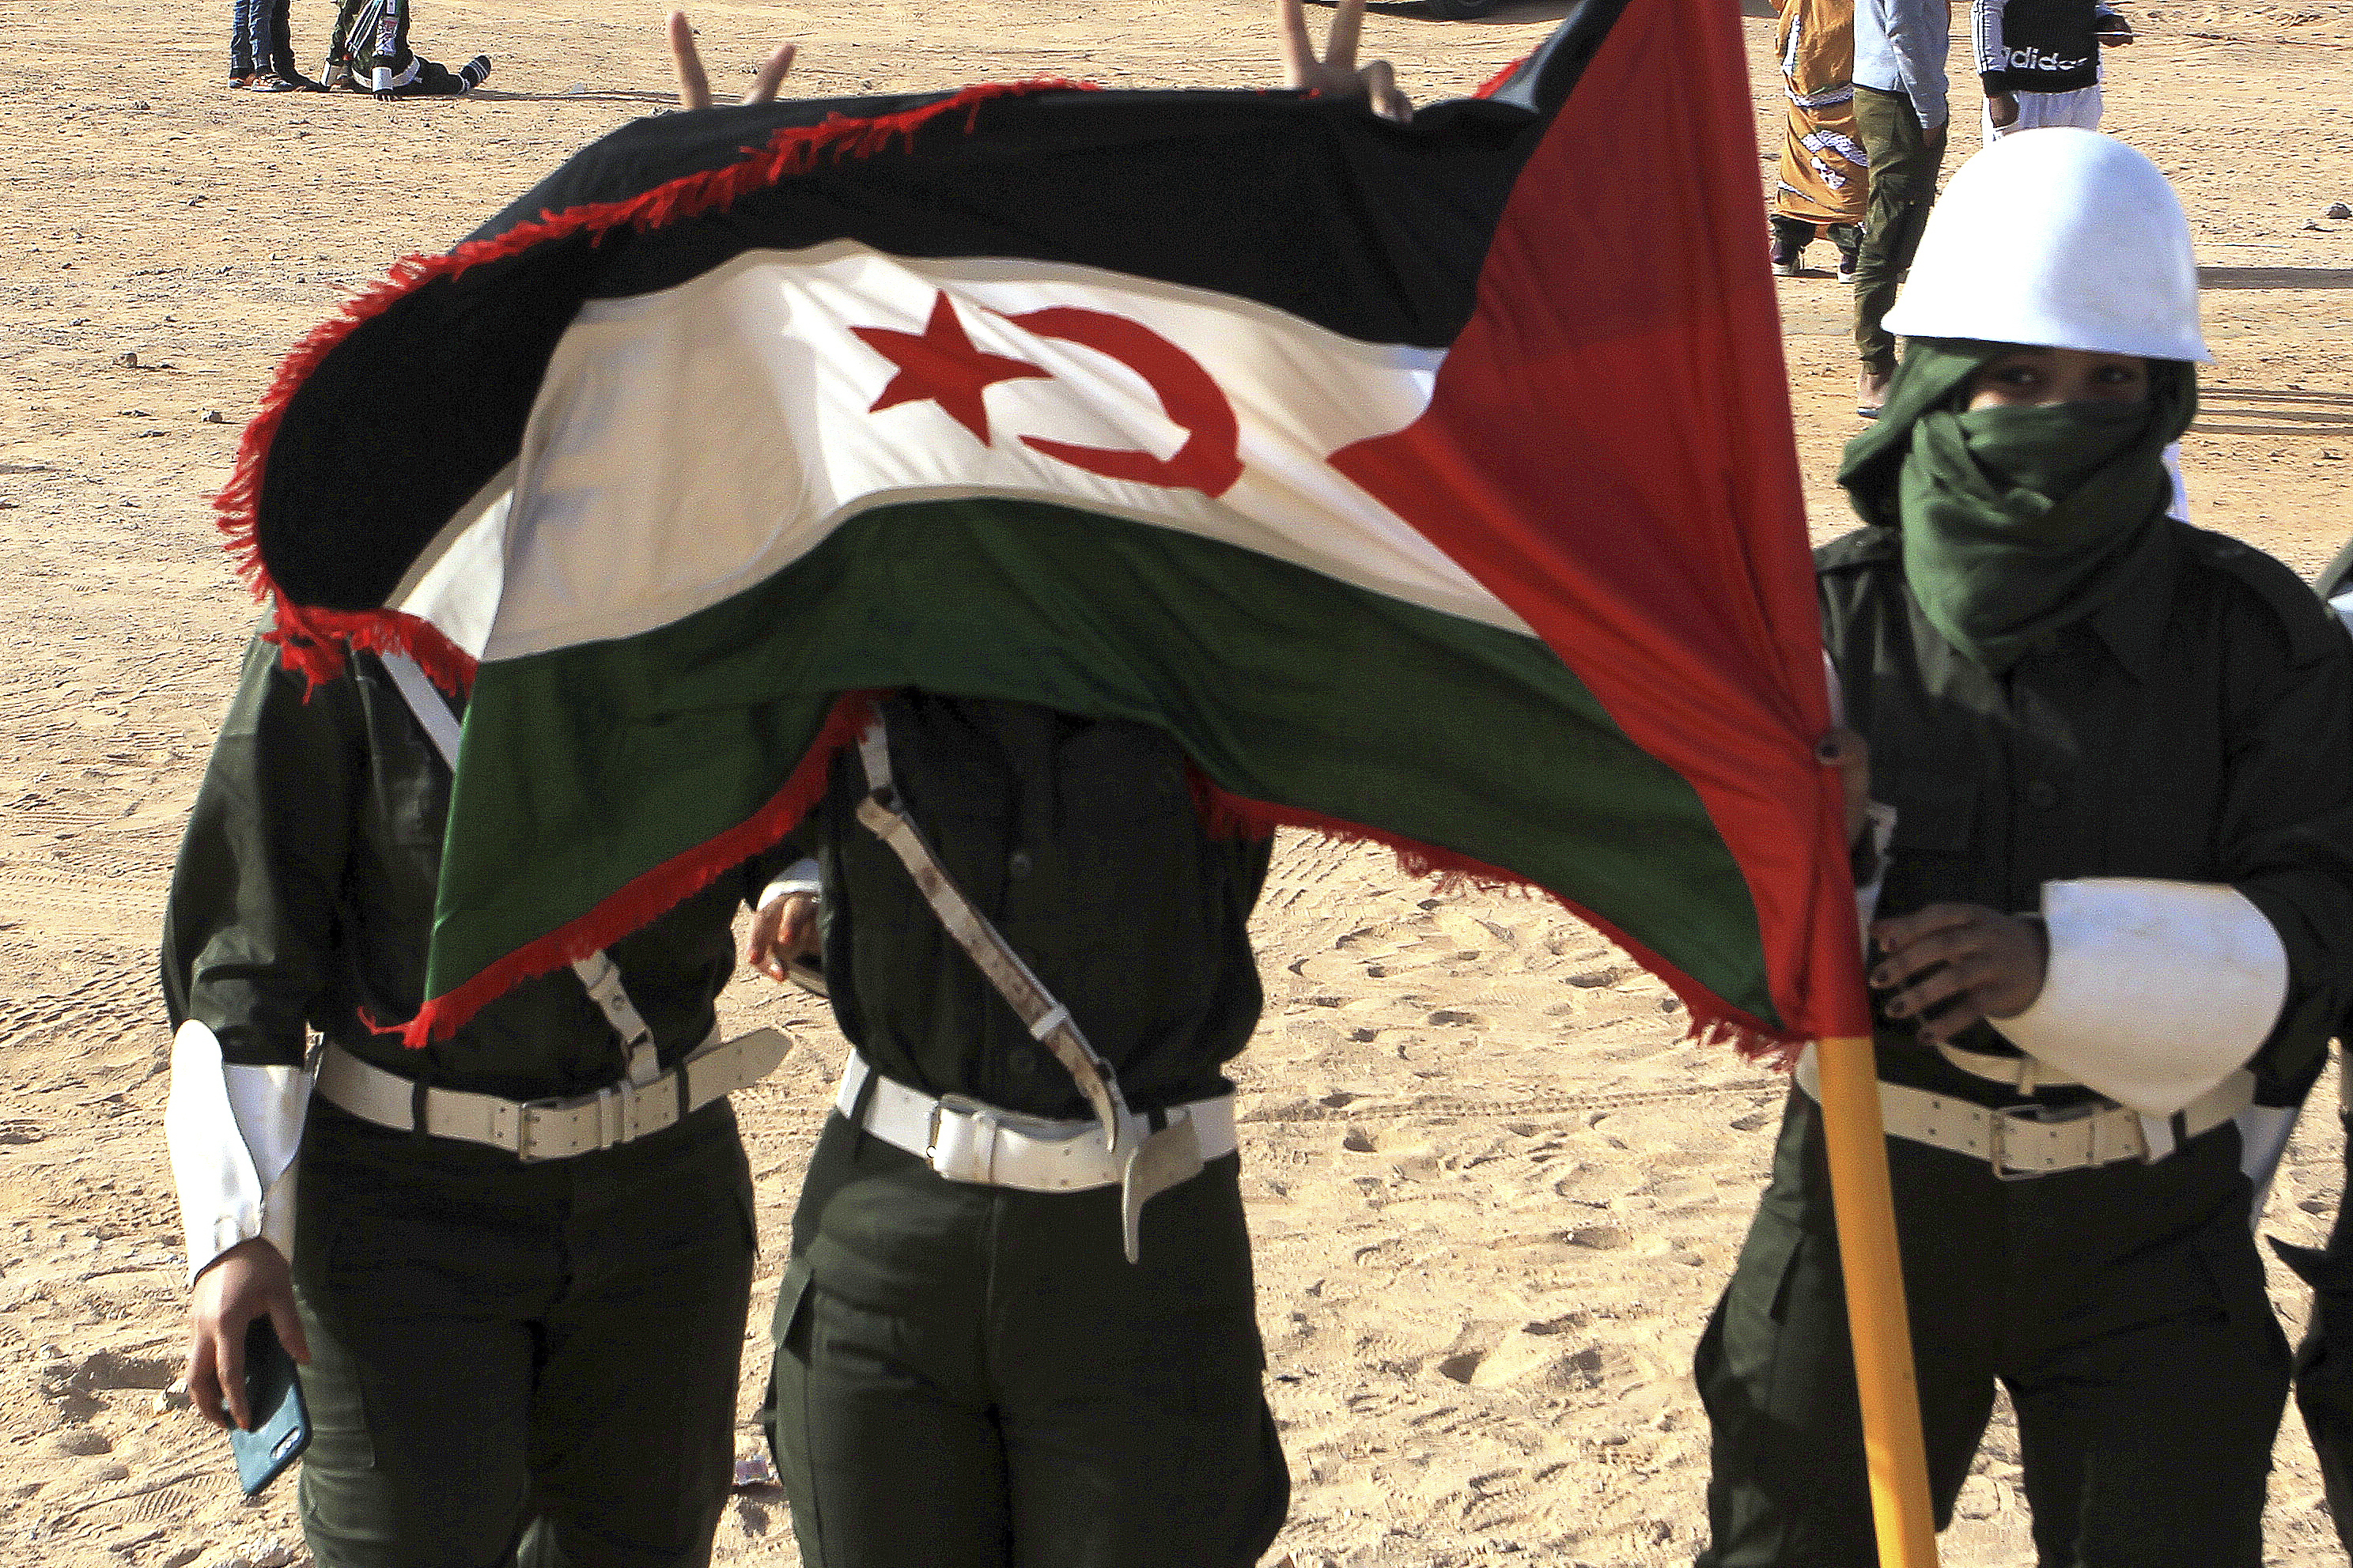 Female soldiers of the Sahrawi Arab Democratic Republic (SARD) parade during celebrations marking the 45th anniversary of the creation of the SARD Saturday, Feb.27 2021 near Tindouf, southern Algeria. The United Nations sought a settlement of the conflict in Western Sahara after Spain's withdrawal in 1976 from the territory, claimed by both Morocco and by the SADR. (AP Photo/Fateh Guidoum)